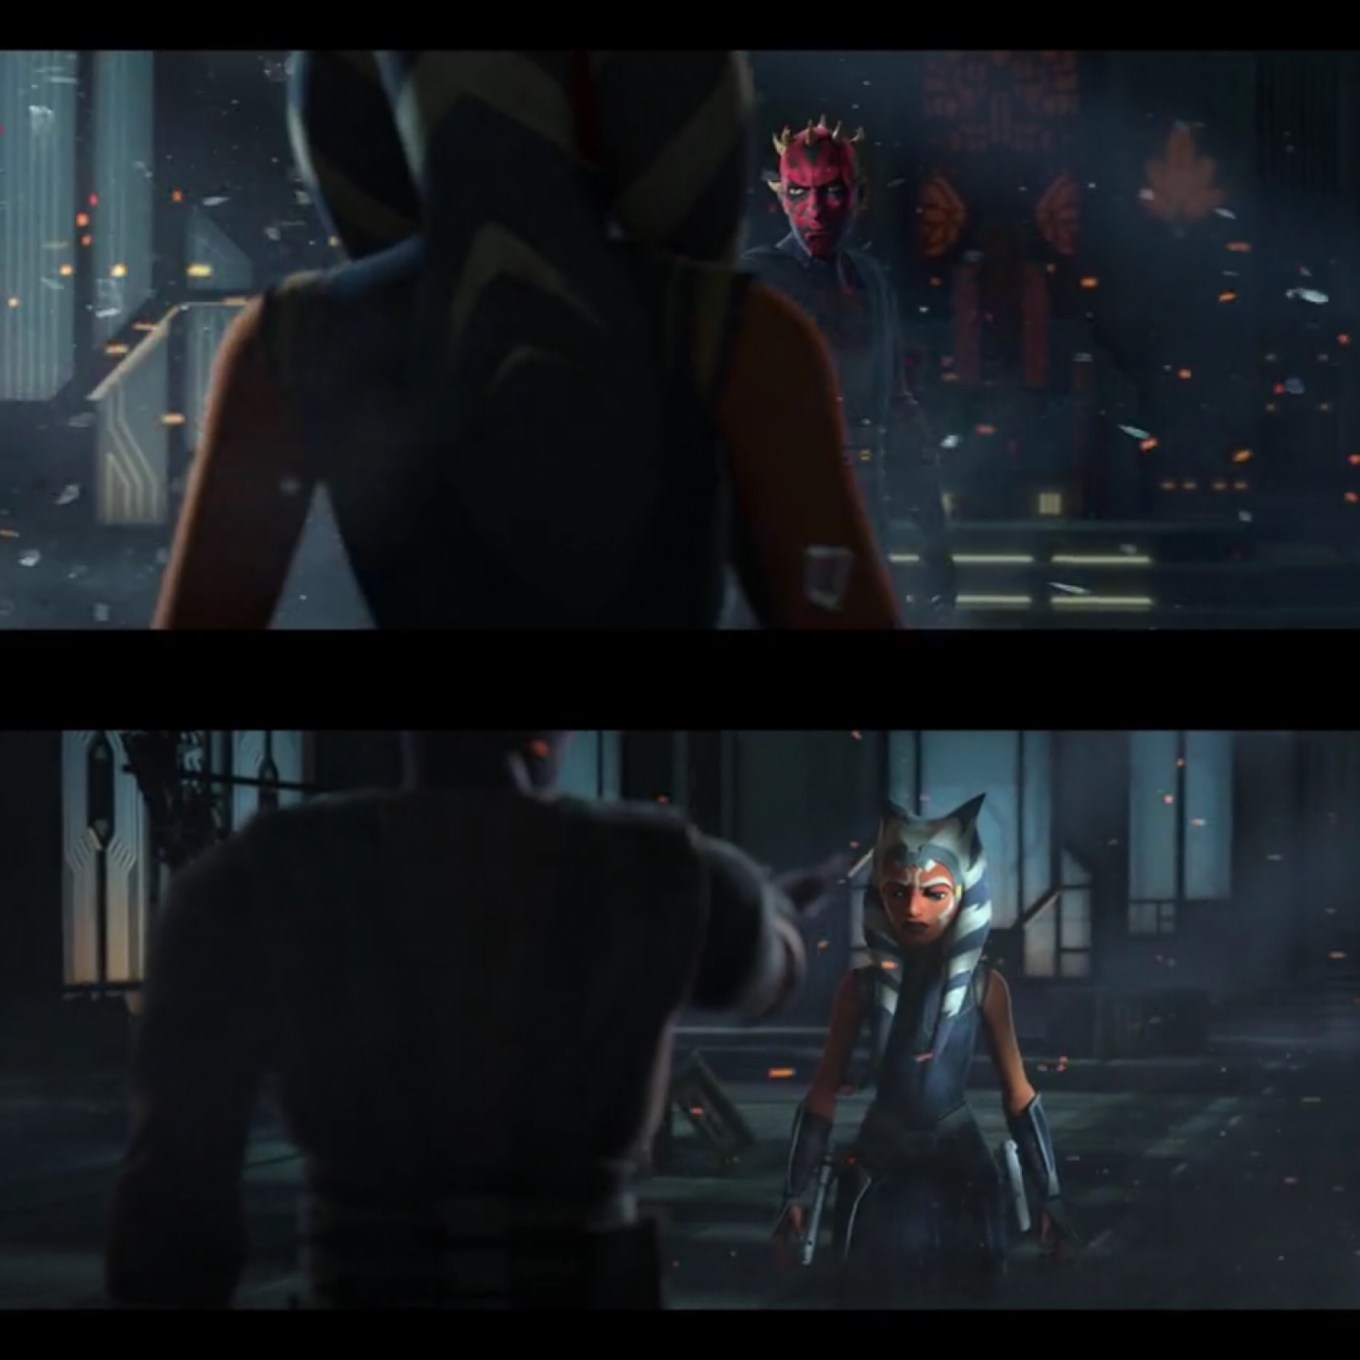 The New Duel of the Fates in The Phantom Apprentice Star Wars: The Clone Wars Season 7, Episode 10